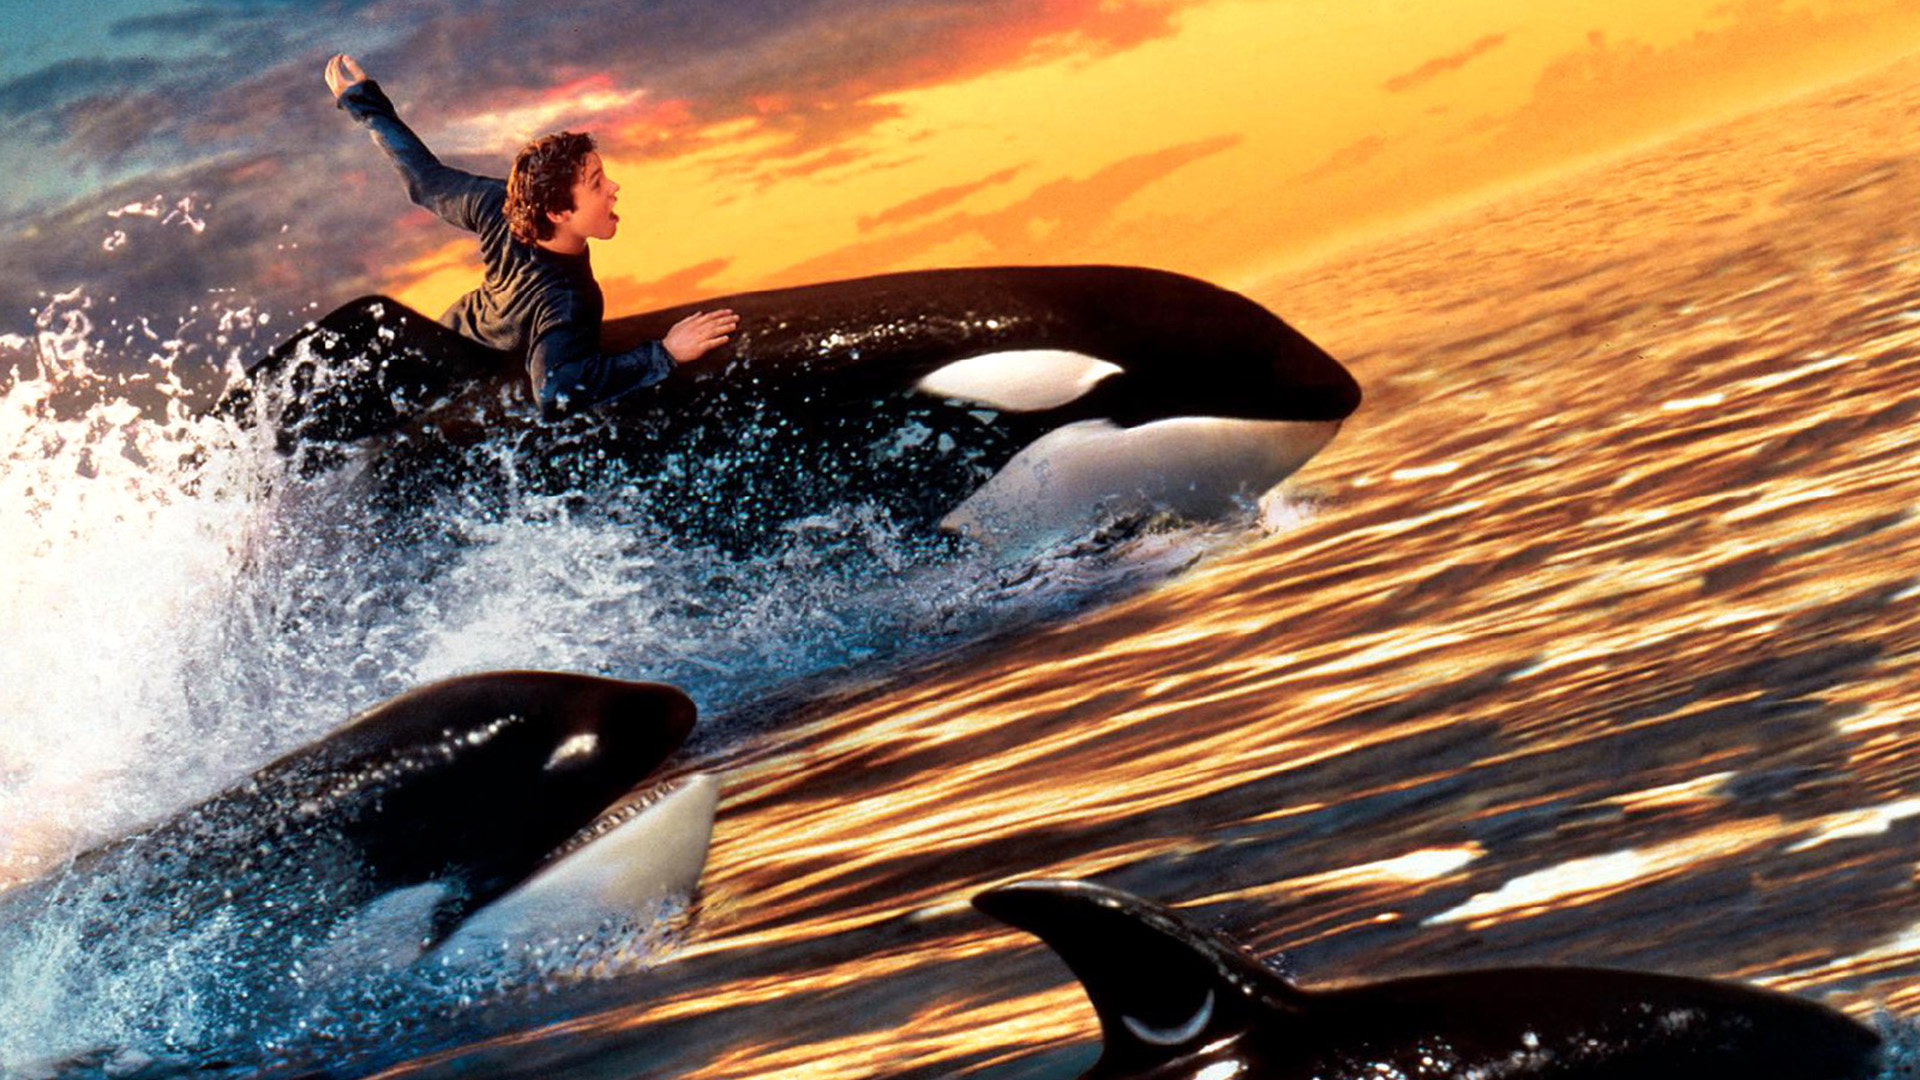 free willy 2 the adventure home hd wallpaper background